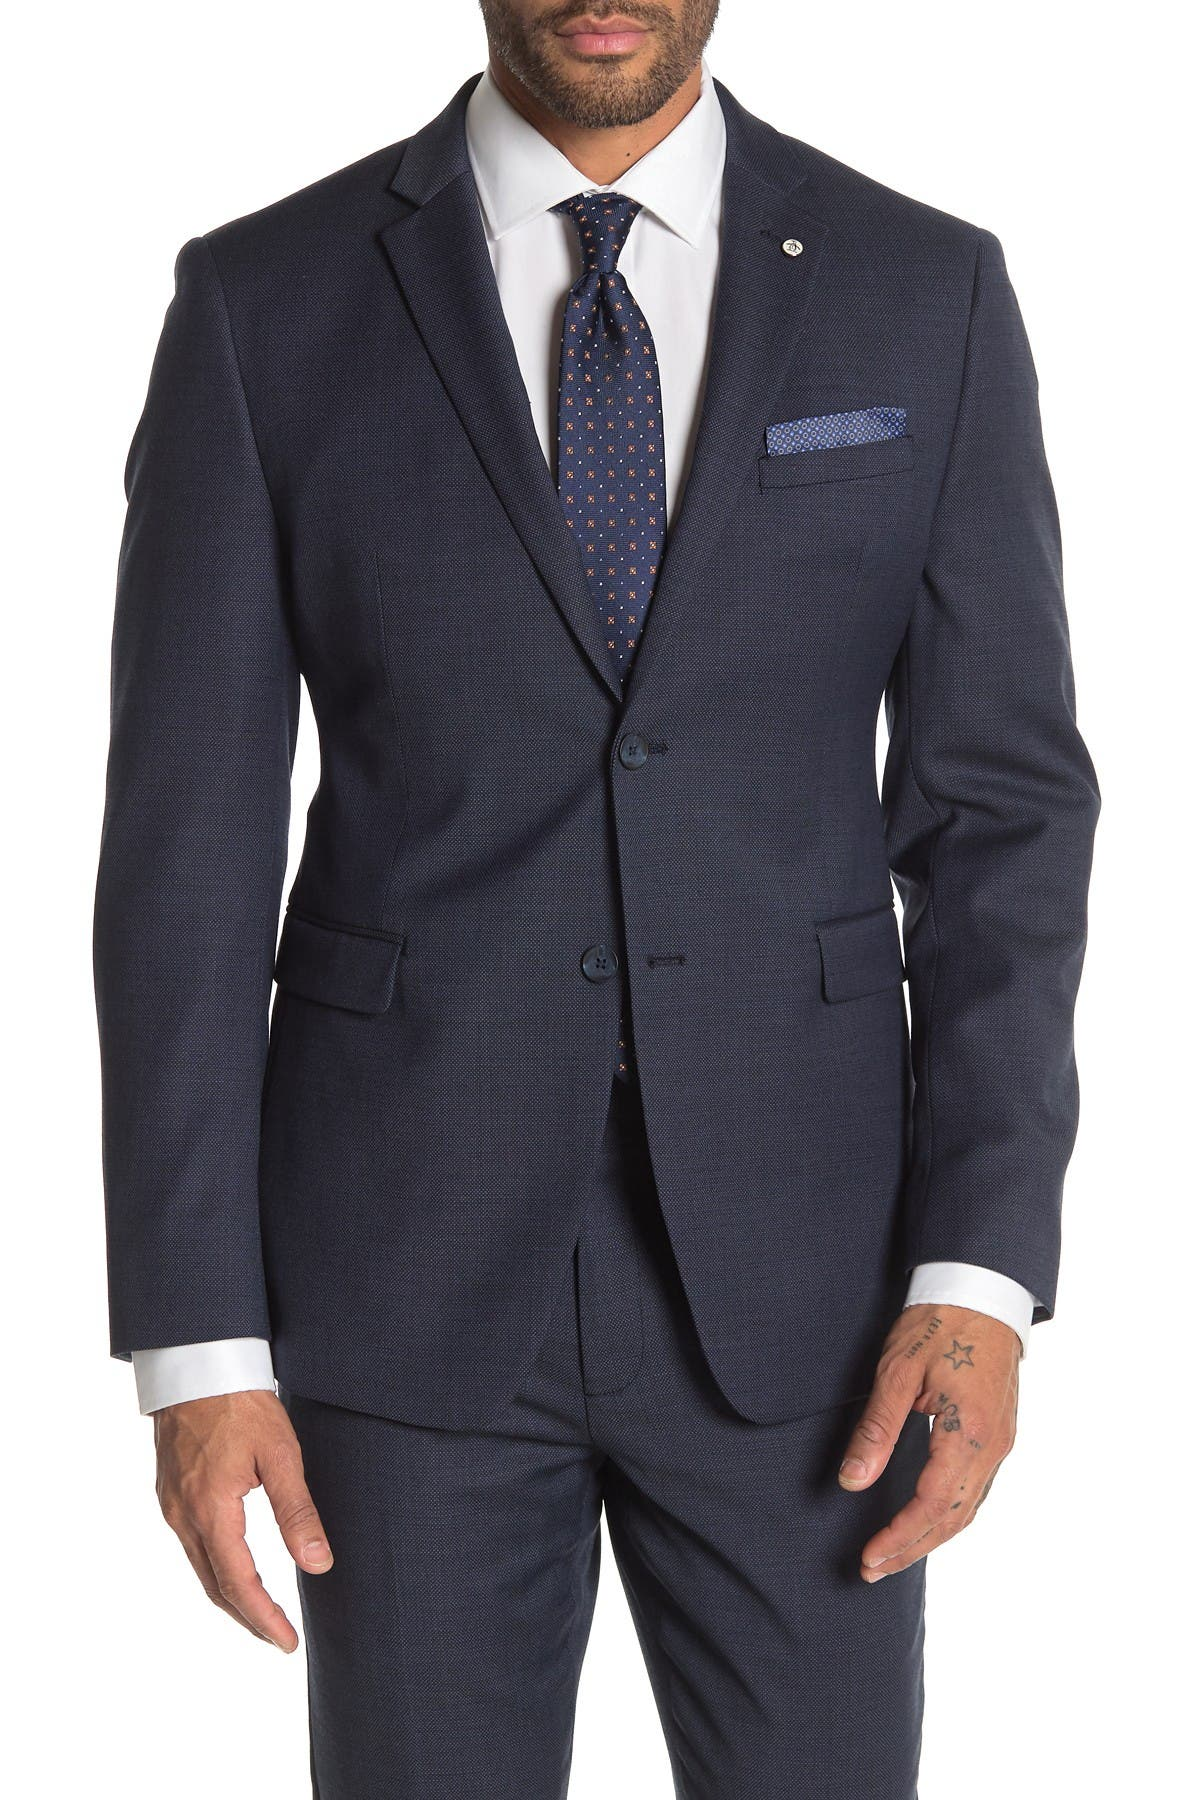 Image of Original Penguin Blue Birdseye Two Button Notch Lapel Slim Fit Suit Separates Jacket